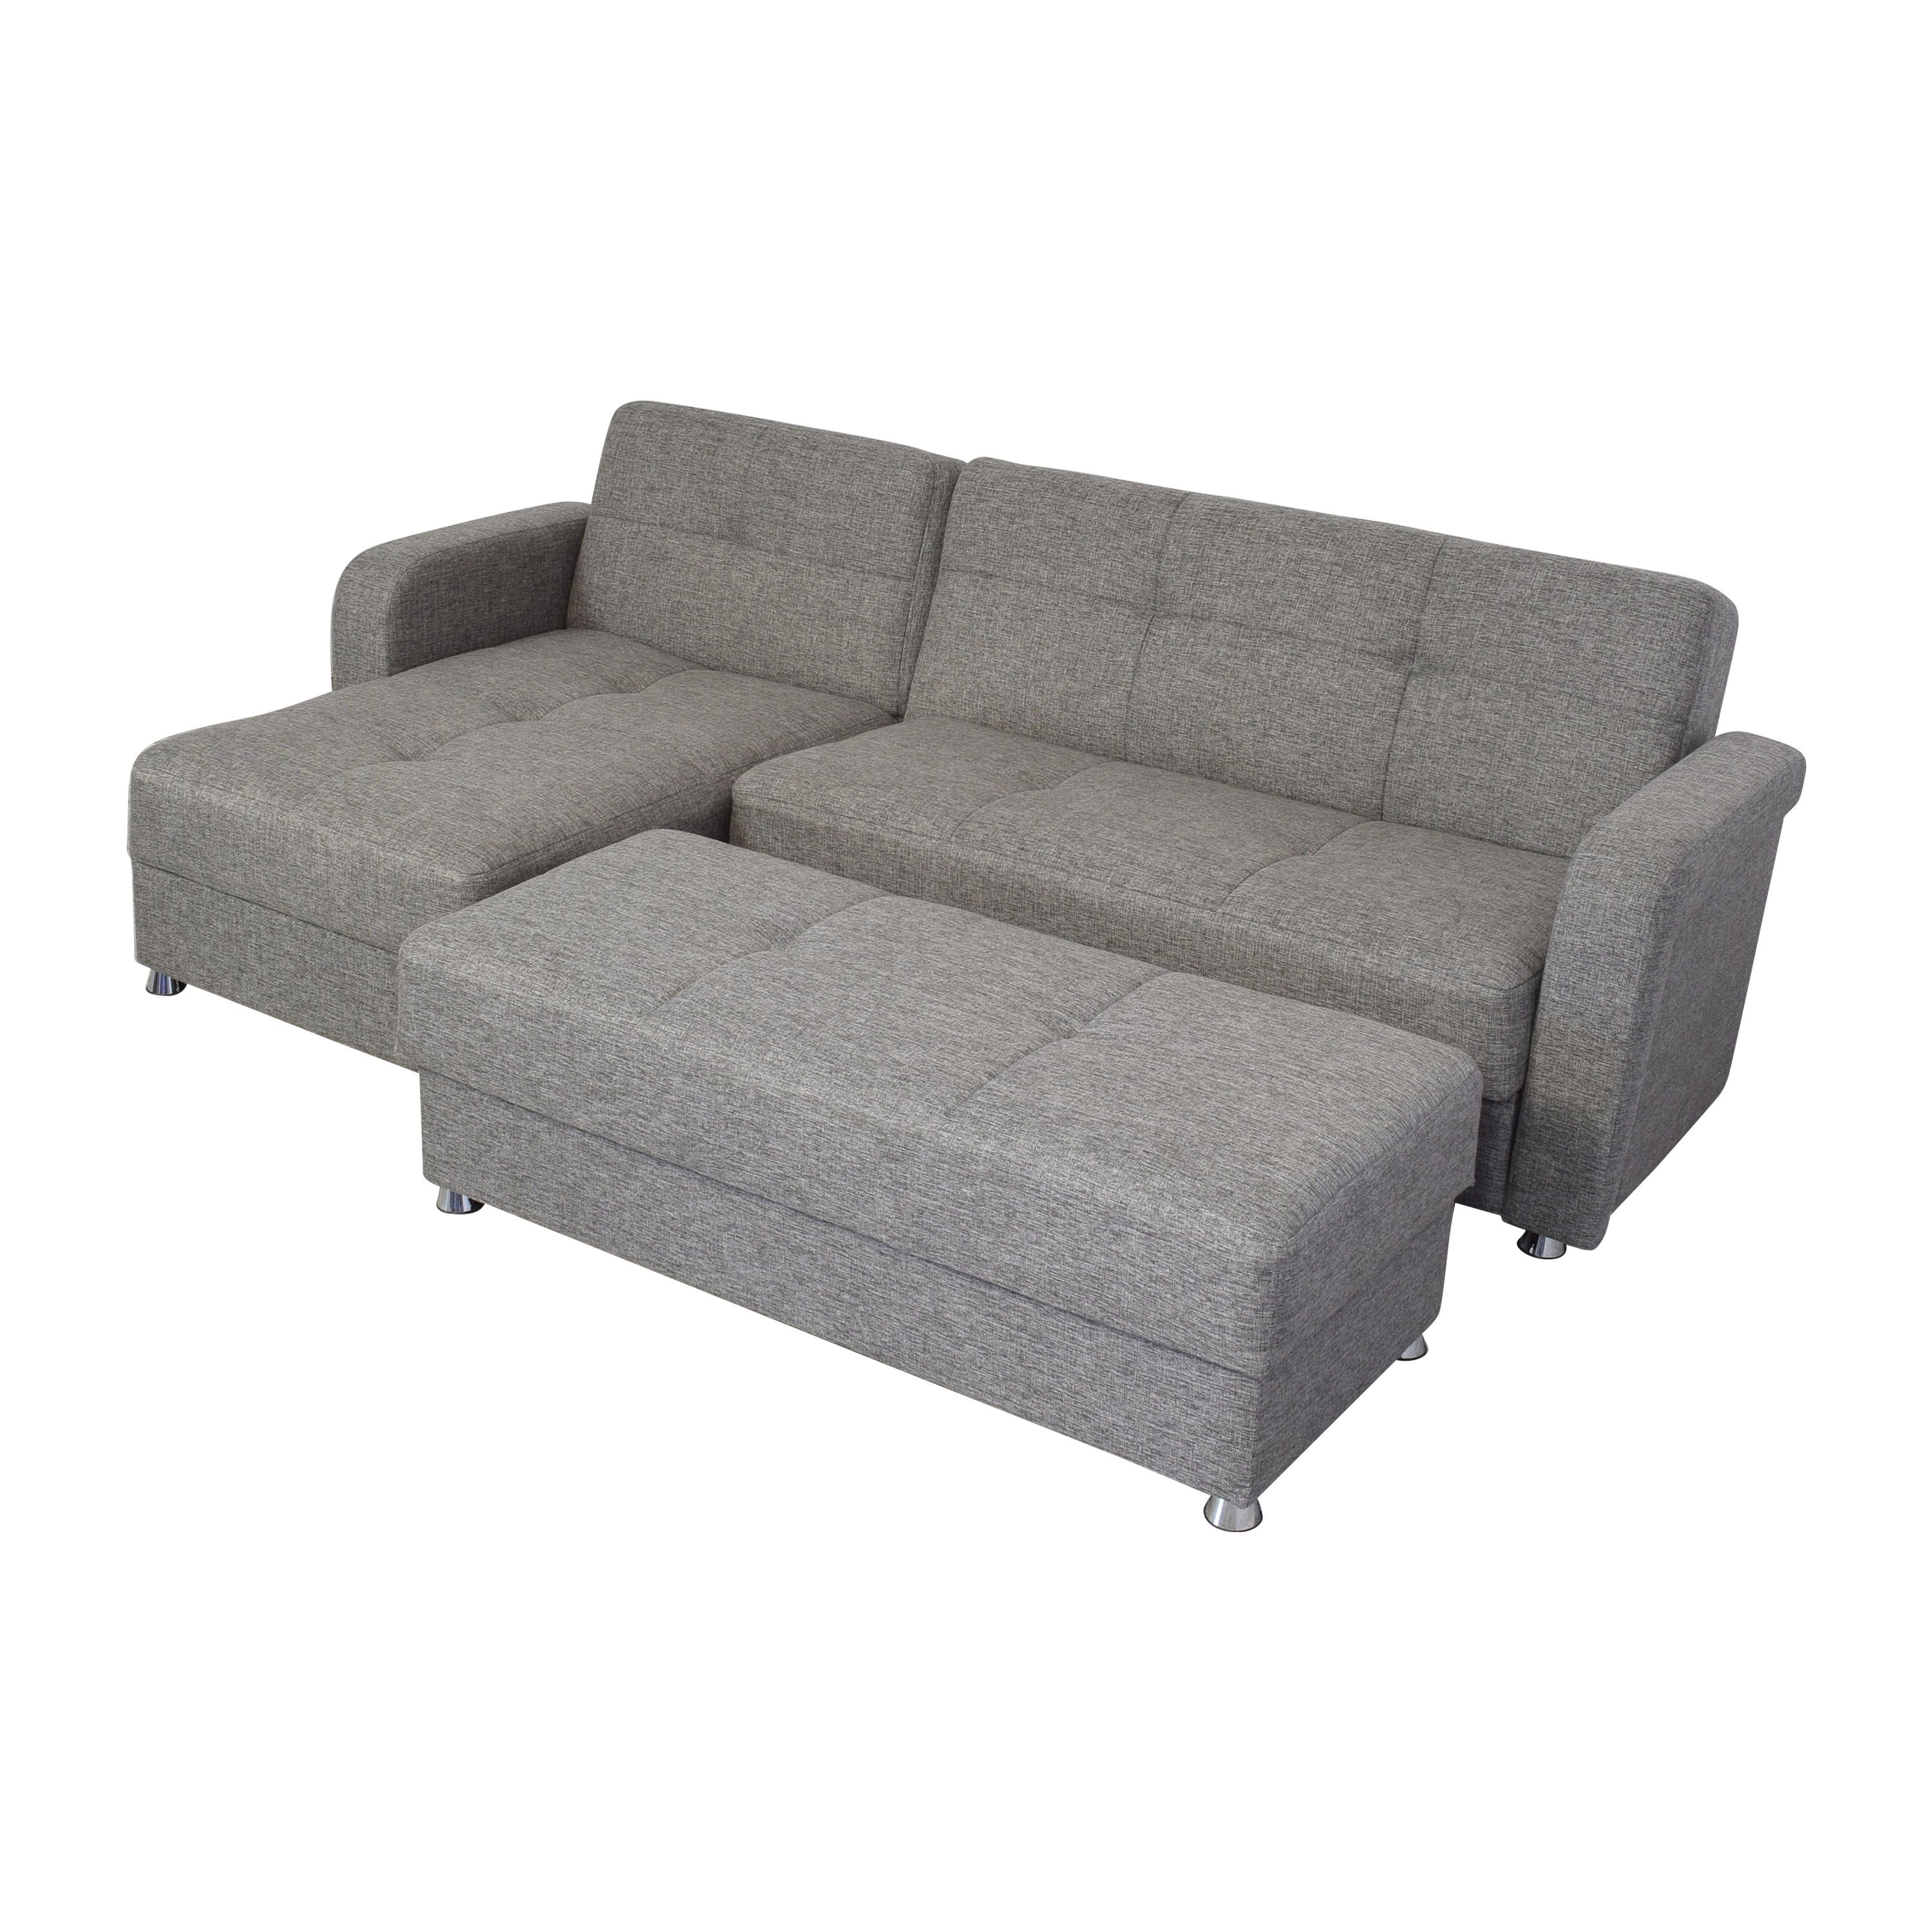 buy Istikbal Vision Diego Sectional Sofa and Ottoman Istikbal